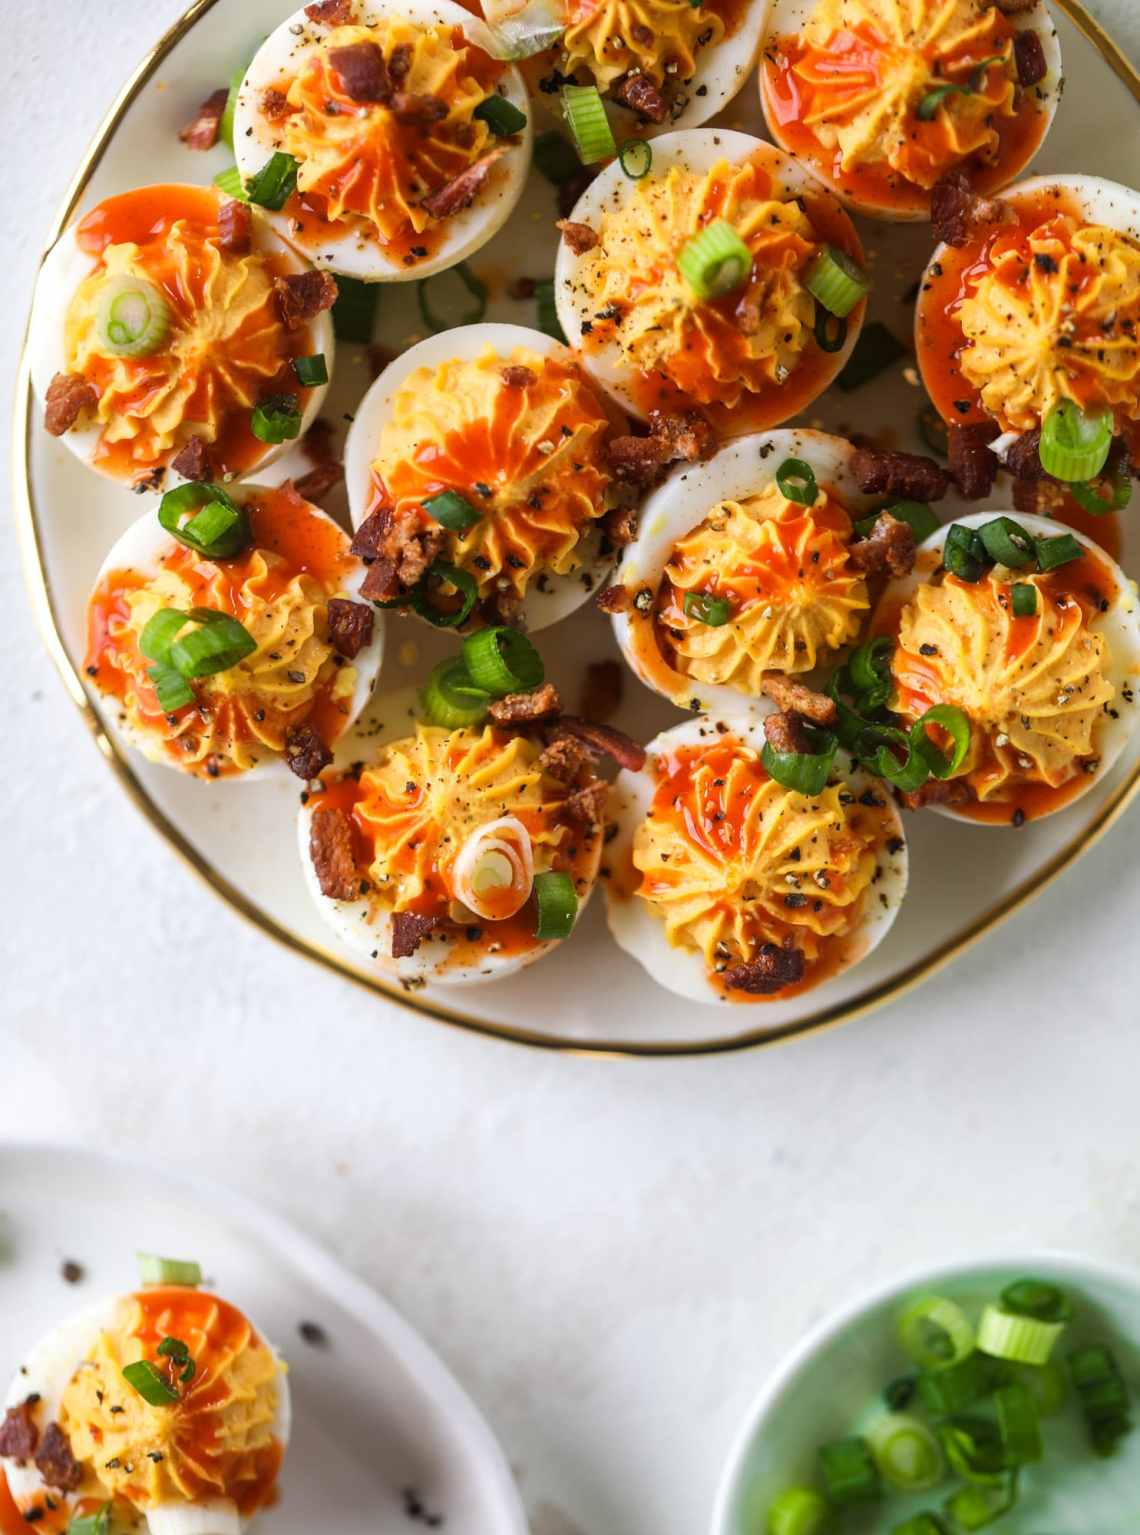 Buffalo deviled eggs are kicked-up deviled eggs! Made with goat cheese filling and served with buffalo wing sauce, crispy bacon and sliced scallions. I howsweeteats.com #deviledeggs #buffalo